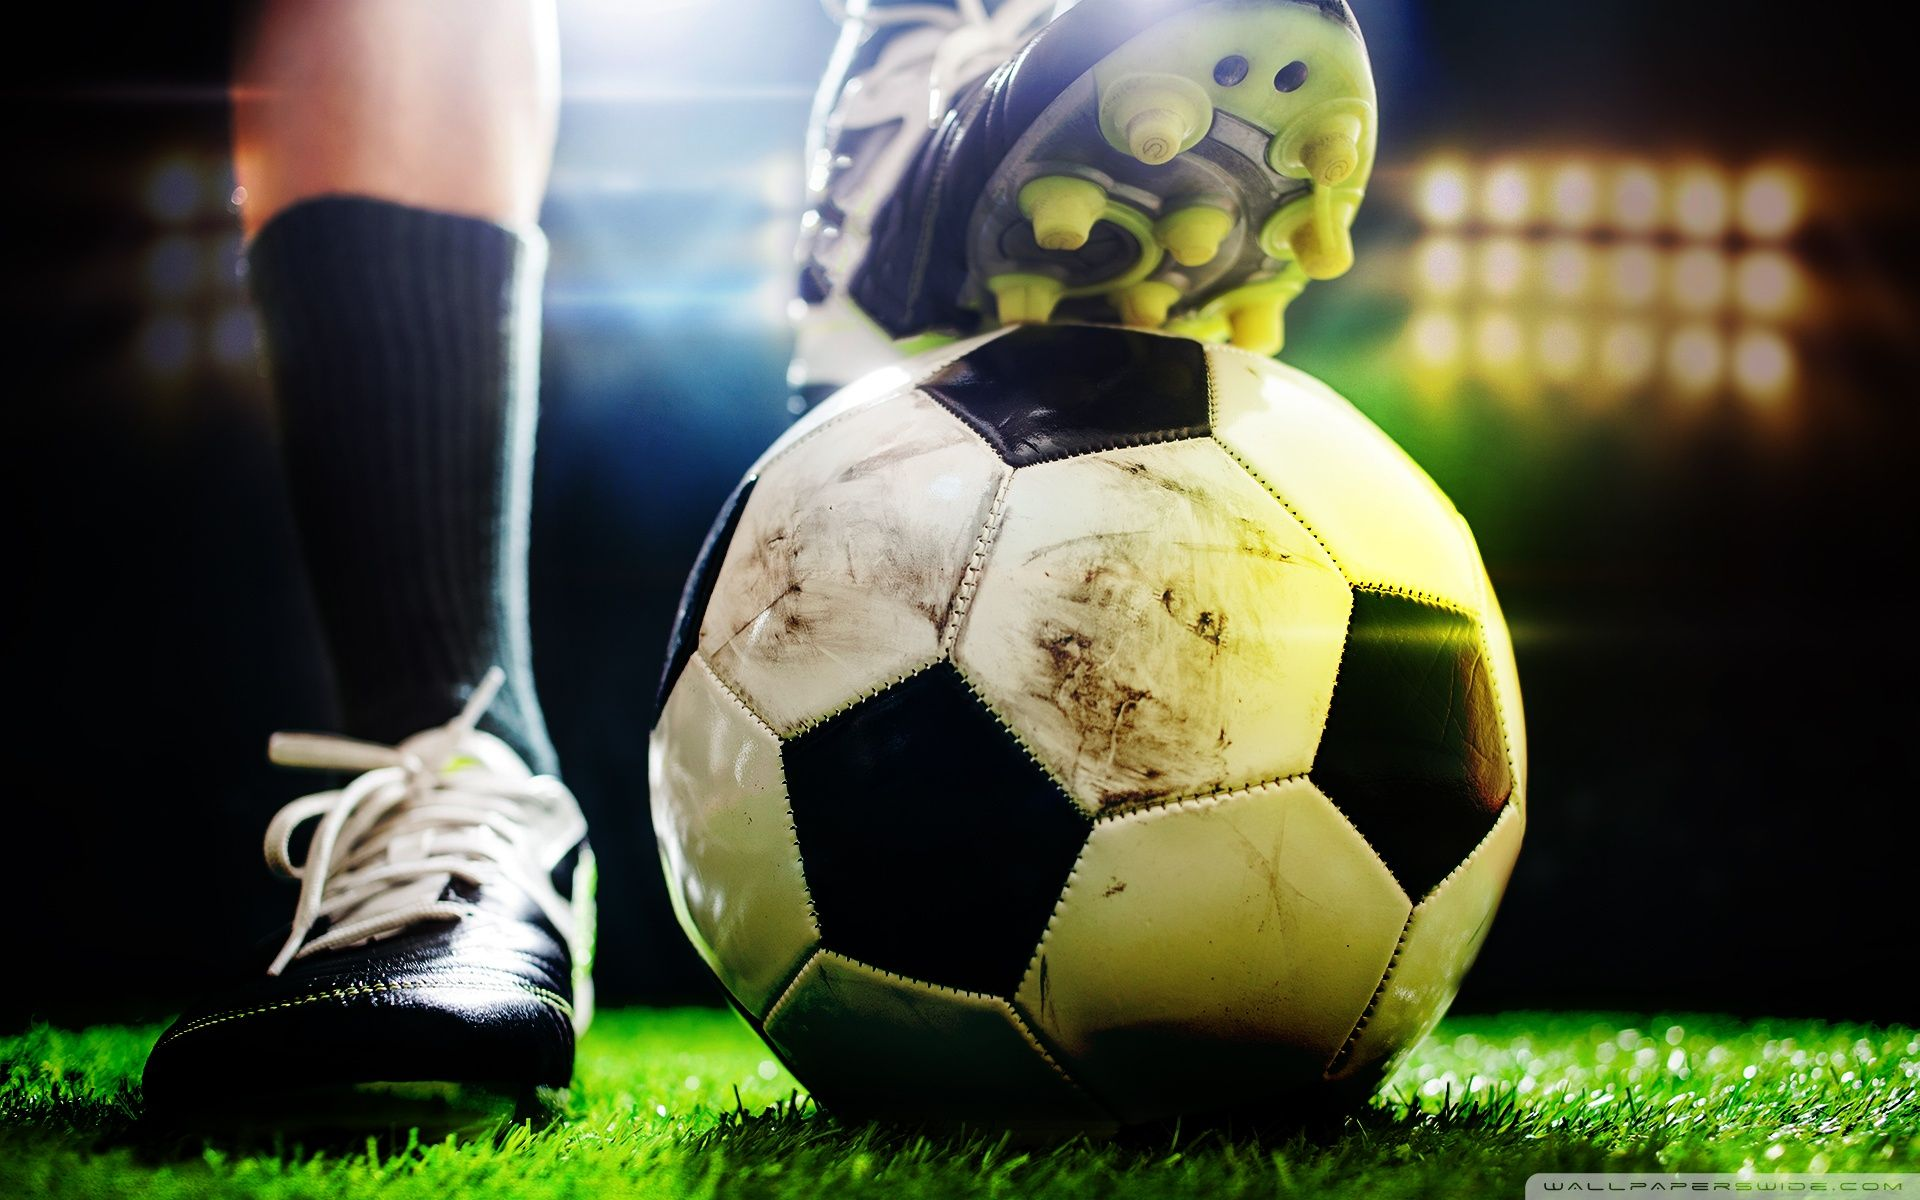 Football Hd Wespeakfootball: Soccer HD Wallpapers For Desktop K D HD Background